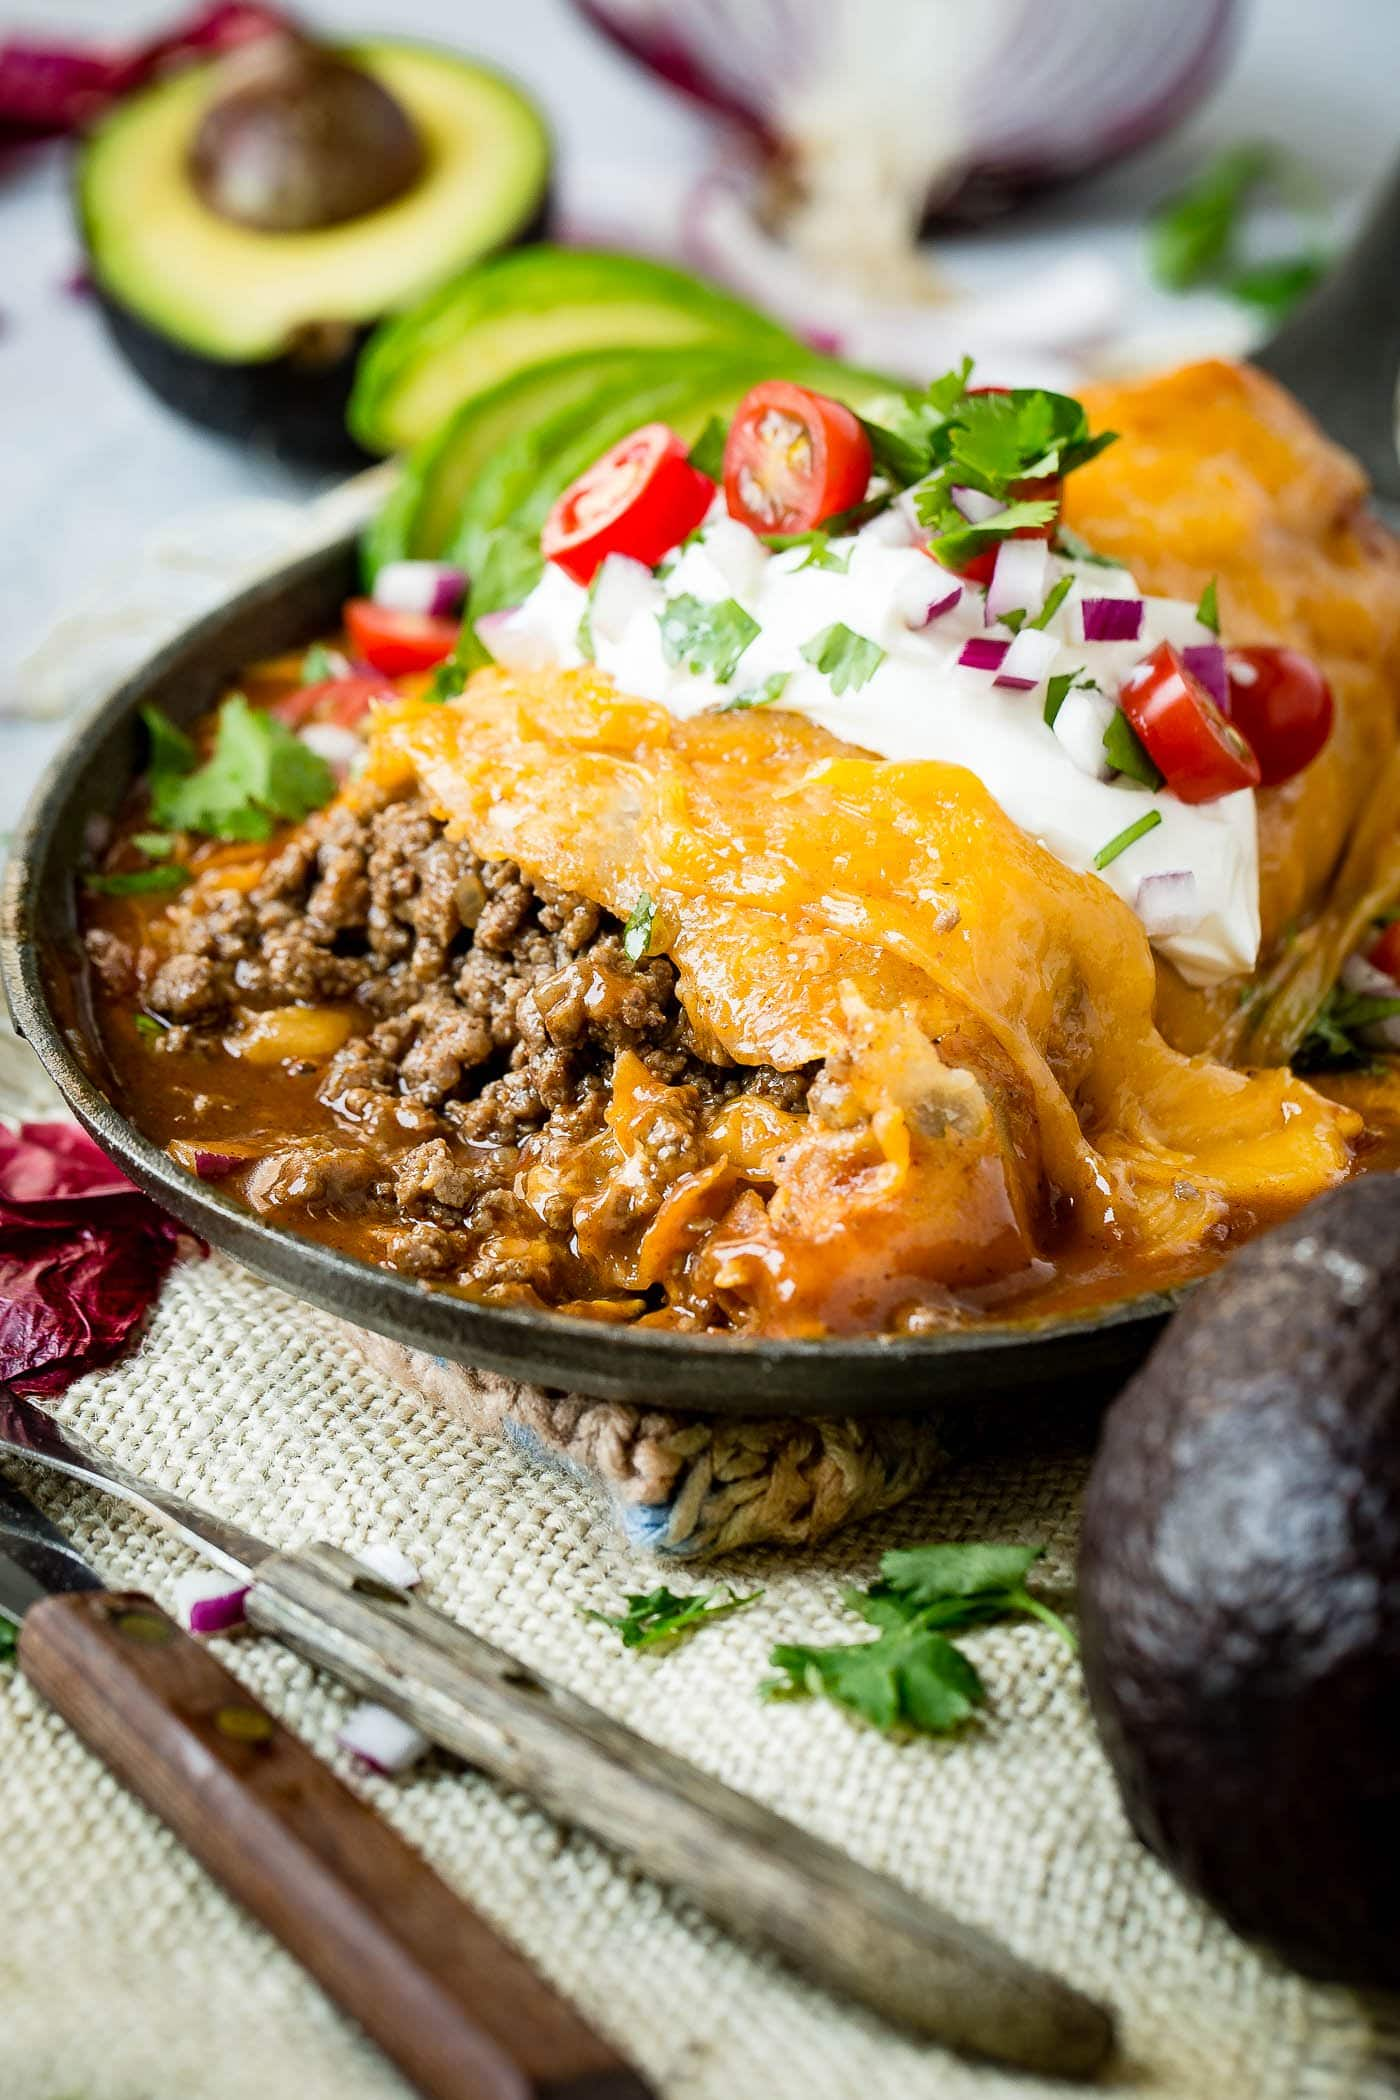 a photo of a large burrito that has been cut into to show the ground beef in a cast iron skillet topped with a sauce and melted cheese and garnished with sour cream, diced red onions, chopped cilantro and sliced grape tomatoes with some avocado slices on the side.